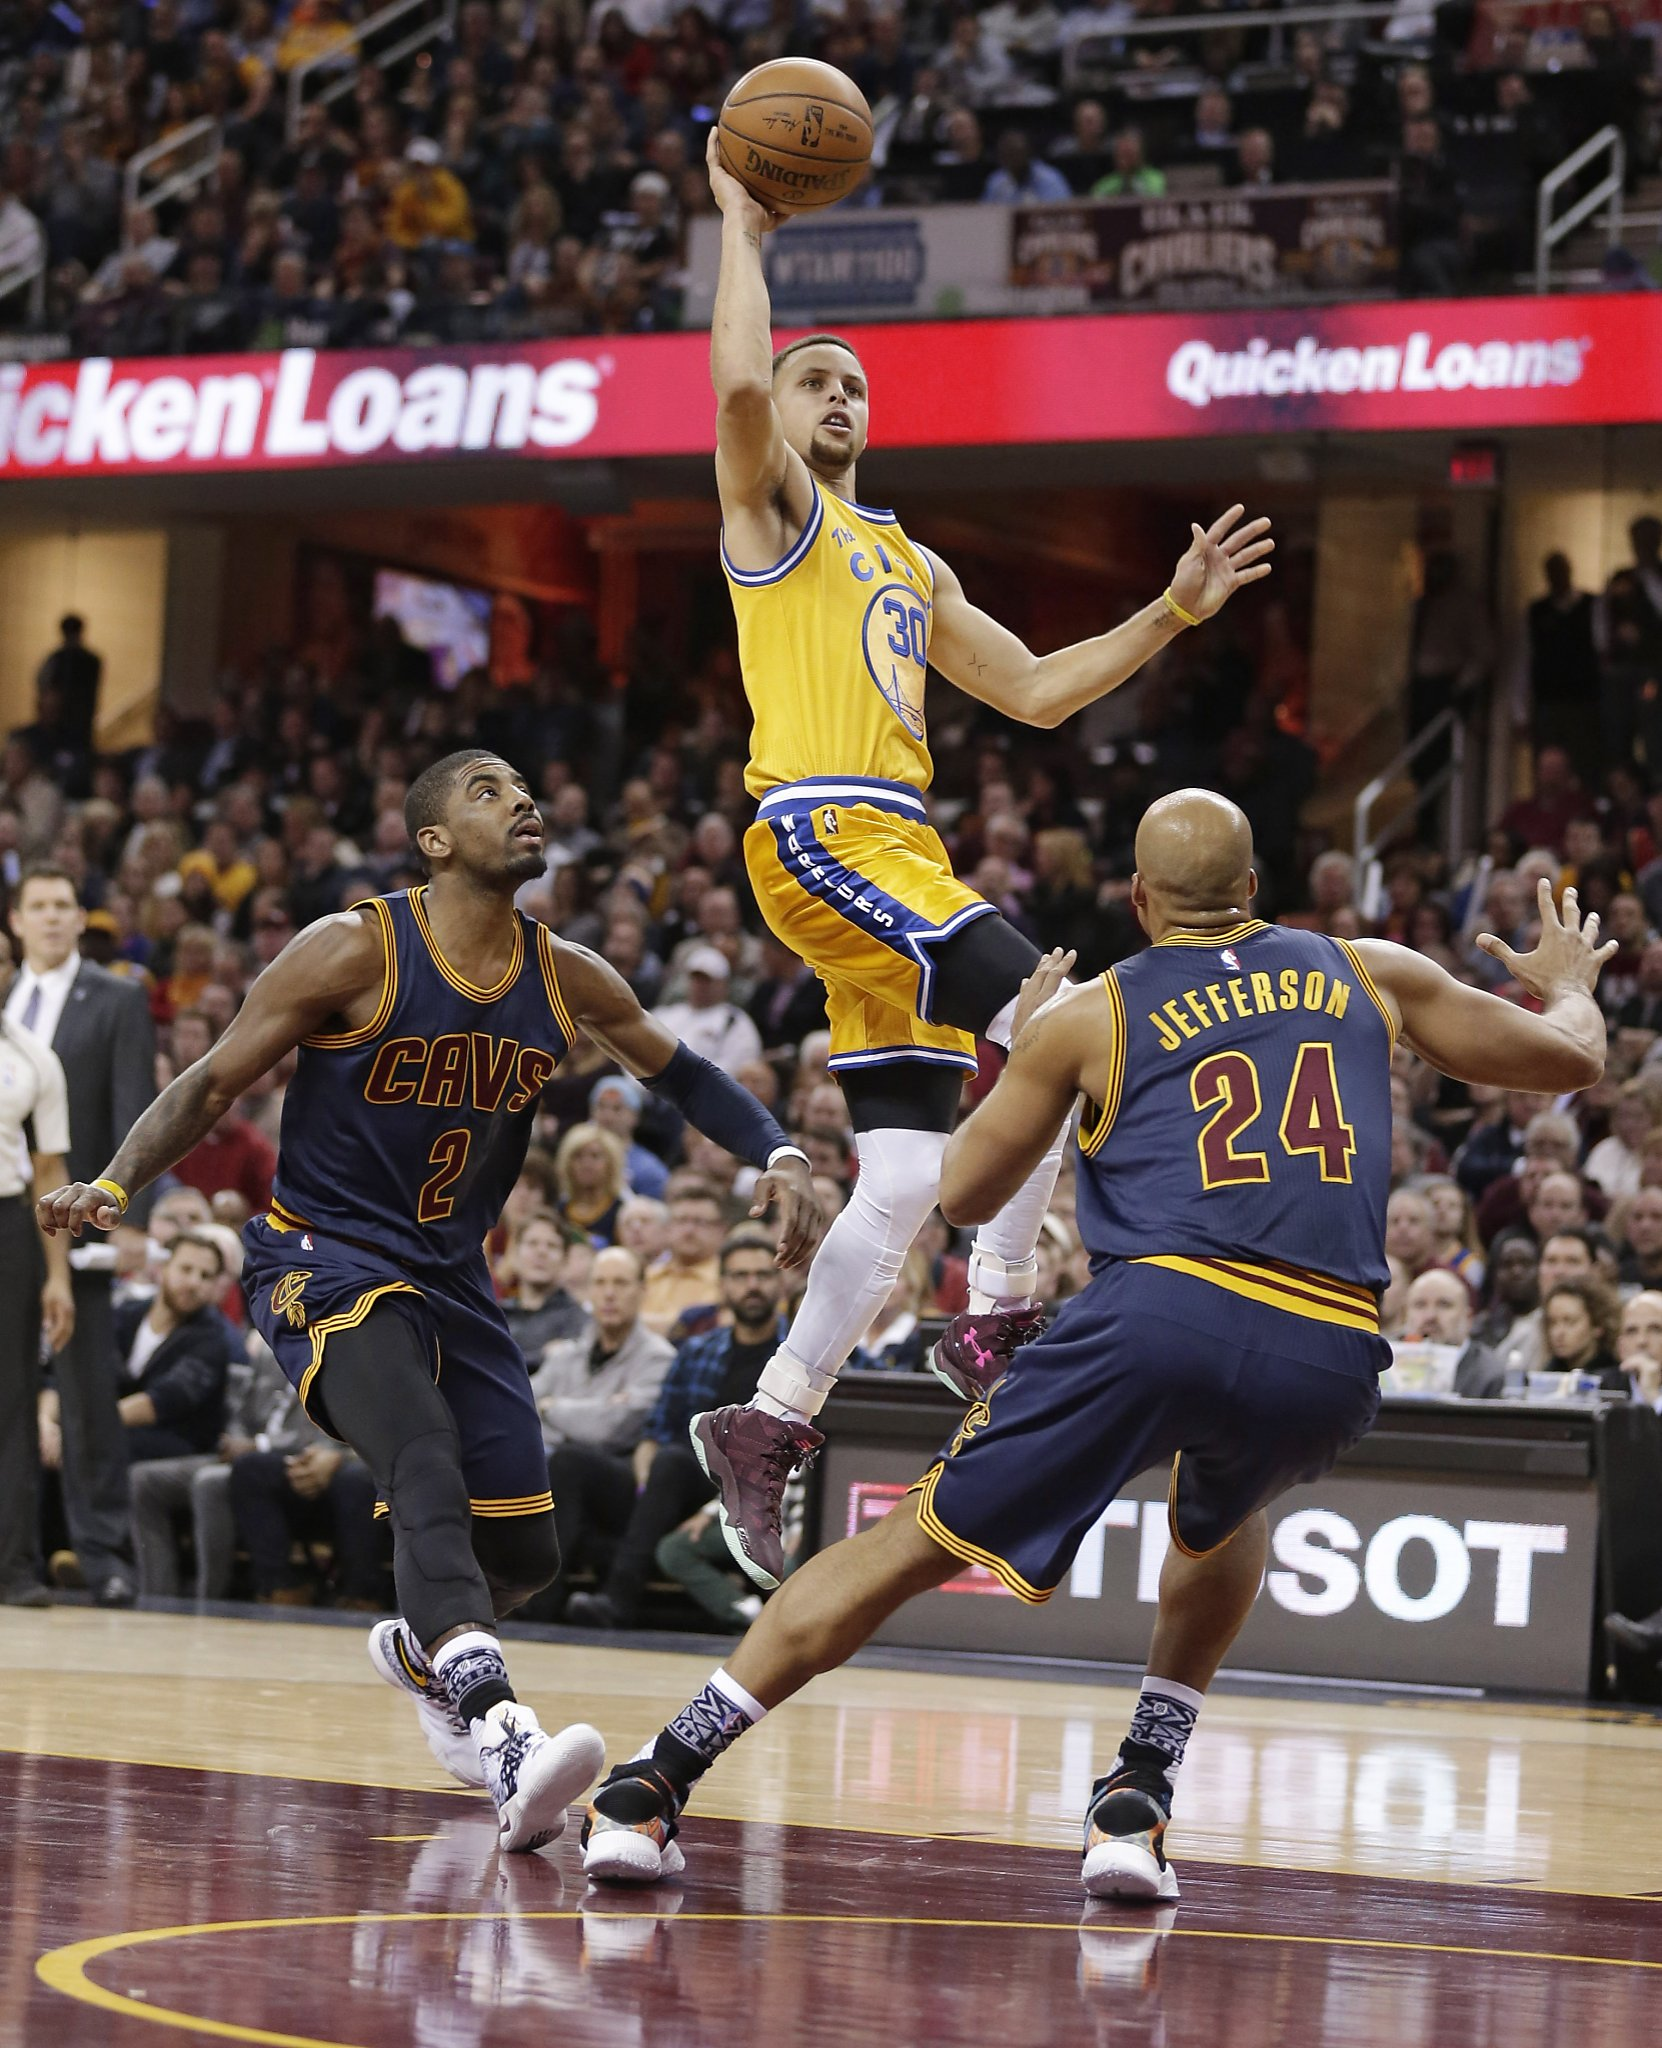 When Do Warriors Move To San Francisco: Warriors Send Message With Rout Of Cavs